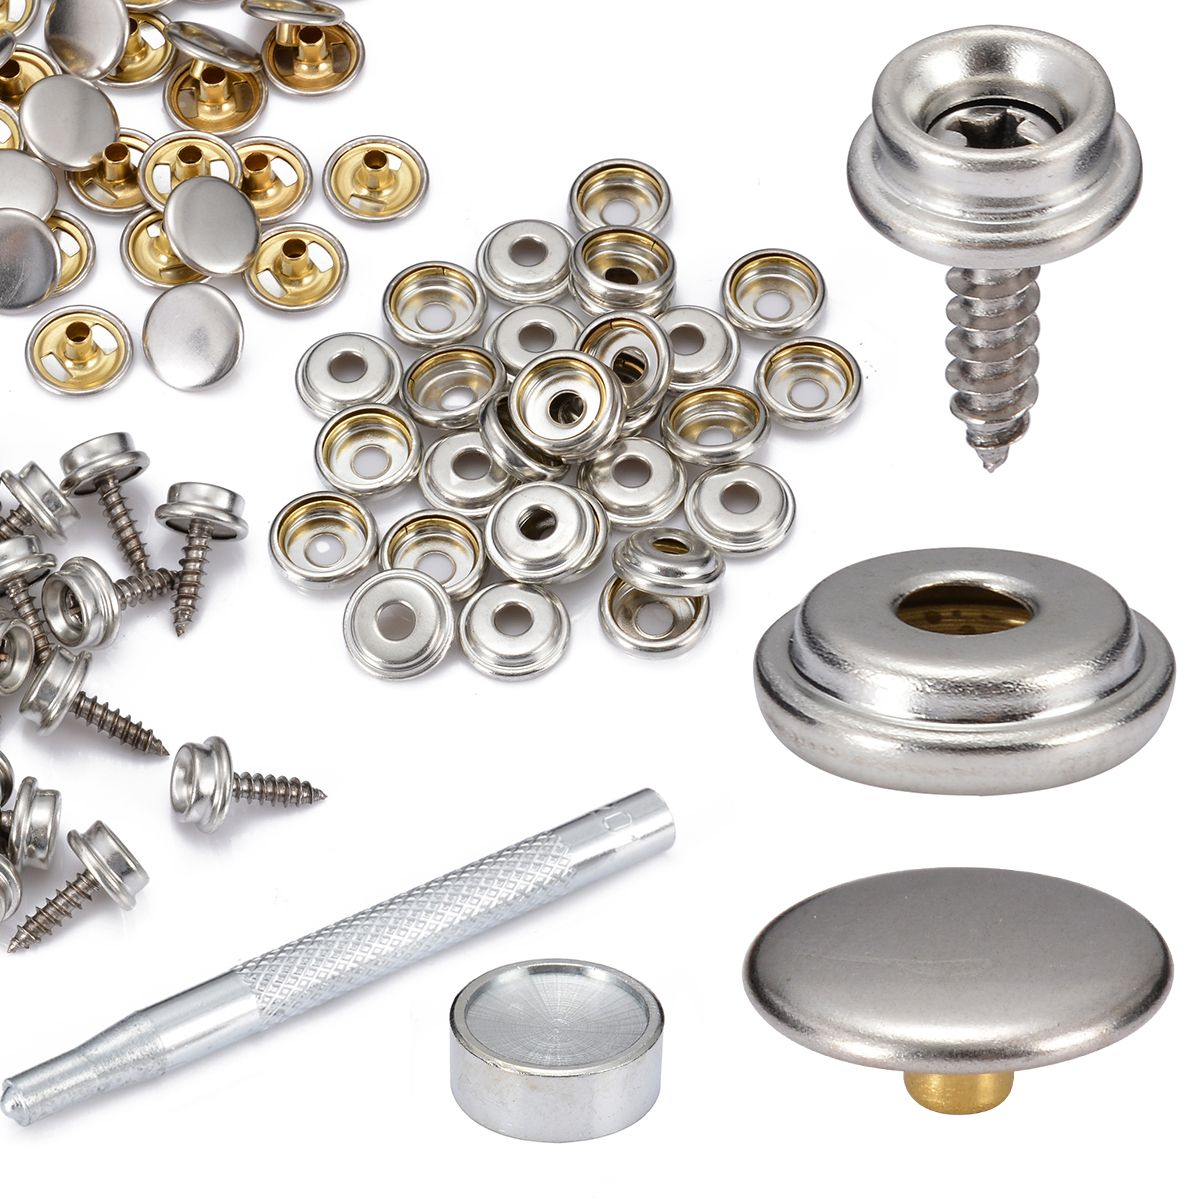 Mayitr 30 Set Snap Fastener Screw Kit Stainless Steel Push Button Cover Plane Tent Boat Camping Car Canopy Accessories Tools